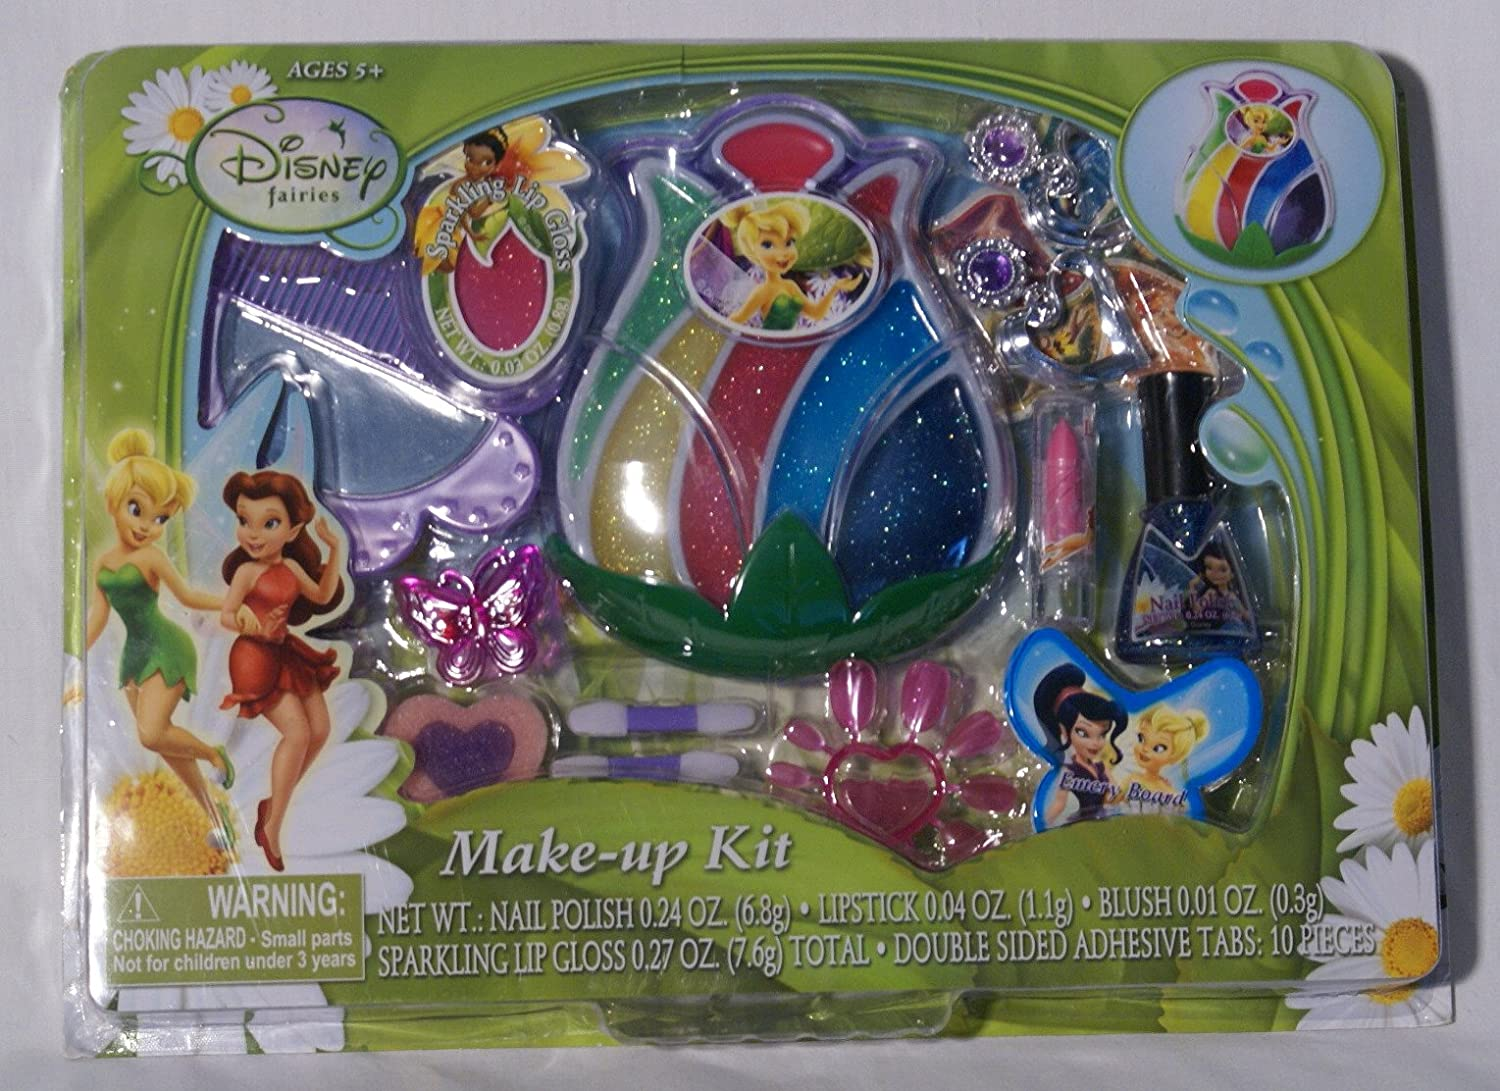 Amazoncom Disney Fairies Makeup Kit Jewelry TinkerBell and the